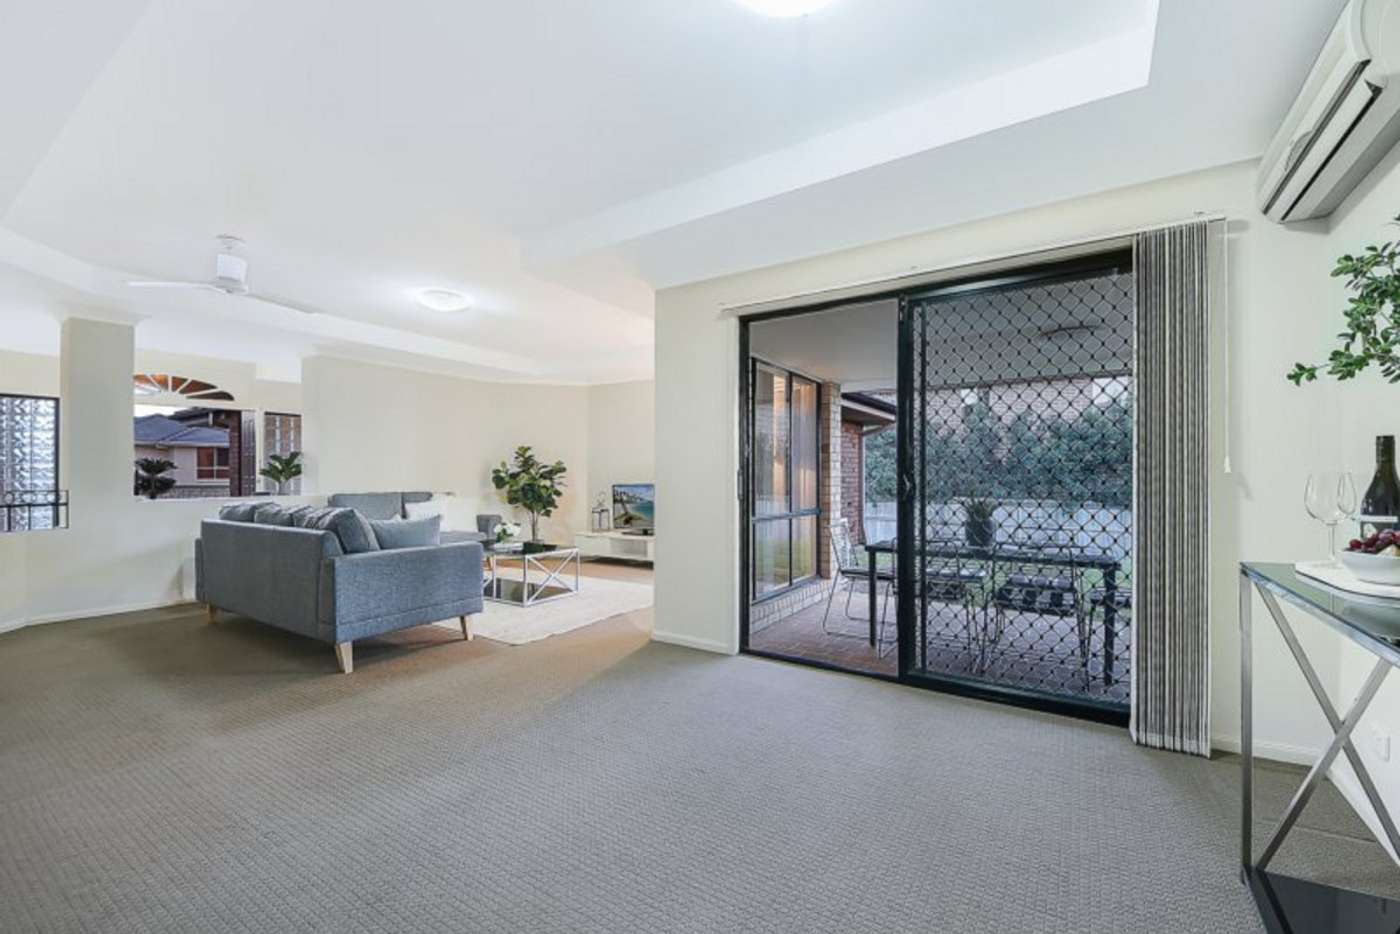 Sixth view of Homely house listing, 21 Hampstead Outlook, Murrumba Downs QLD 4503